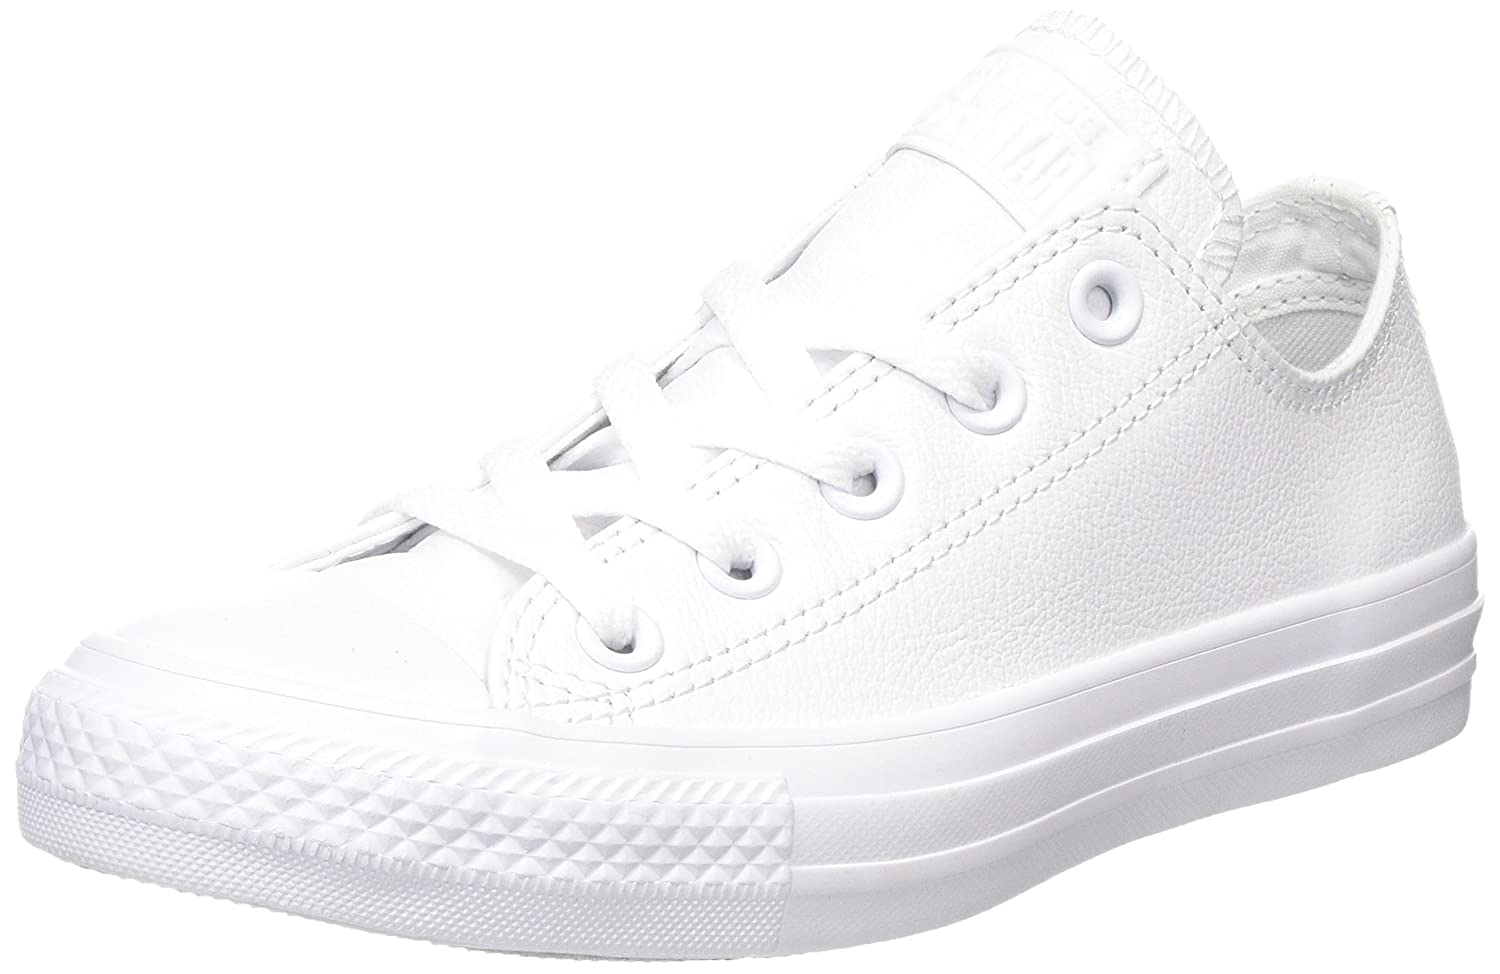 Converse Men's Chuck Taylor All Star Seasonal Ox B00SZGUBTQ 11.5 US Men|White Leather